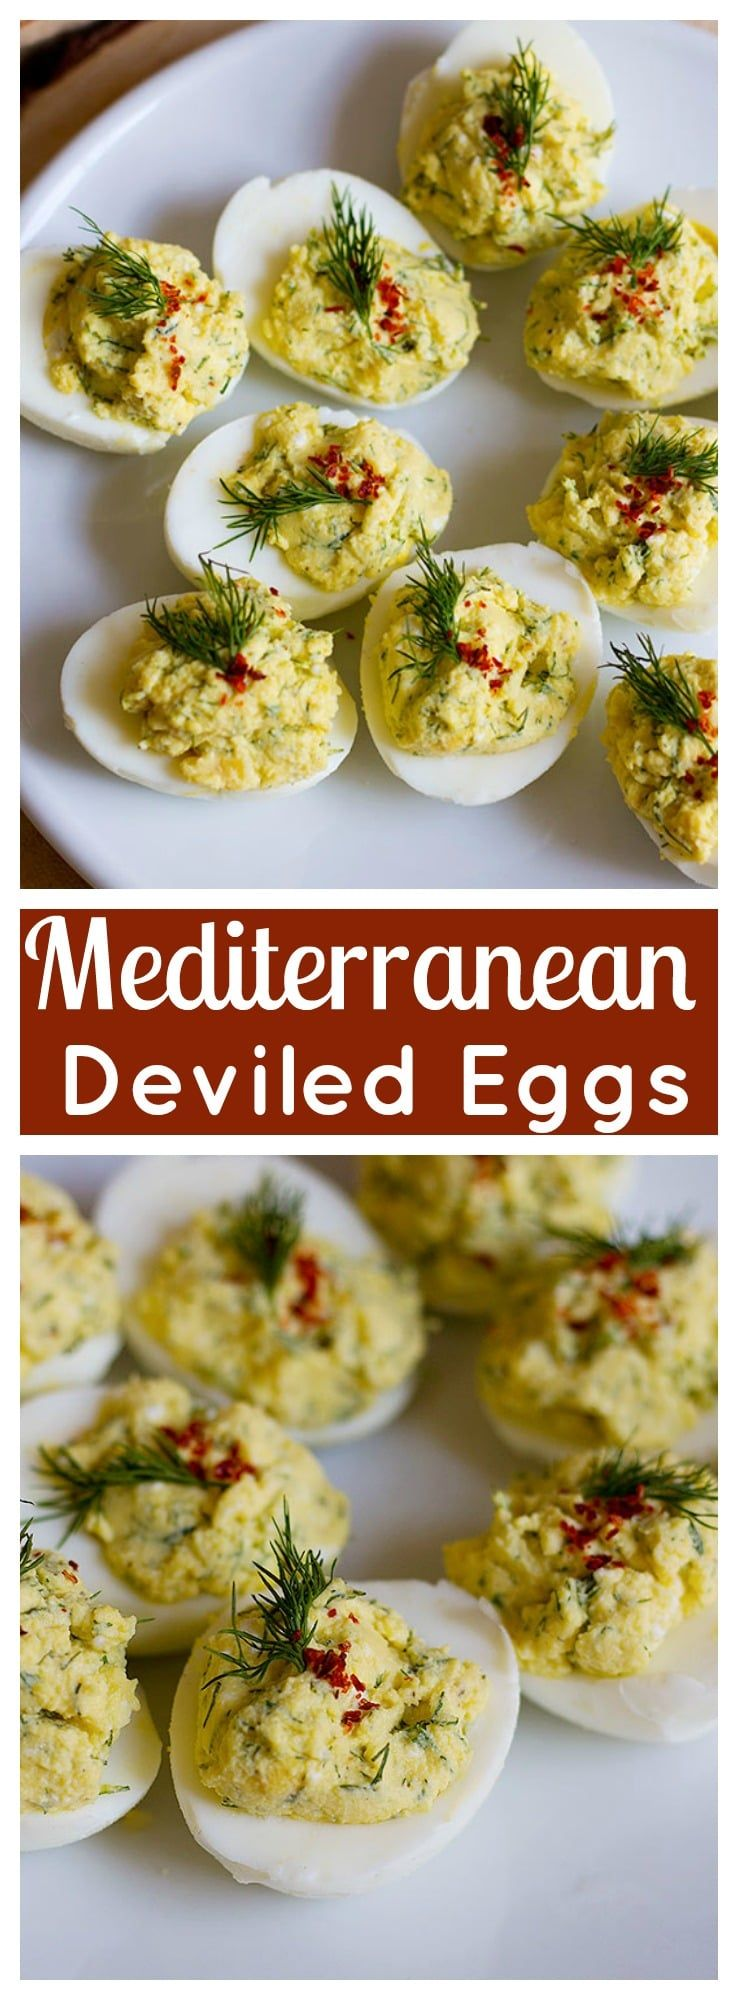 Mediterranean Deviled Eggs • Unicorns in the kitchen